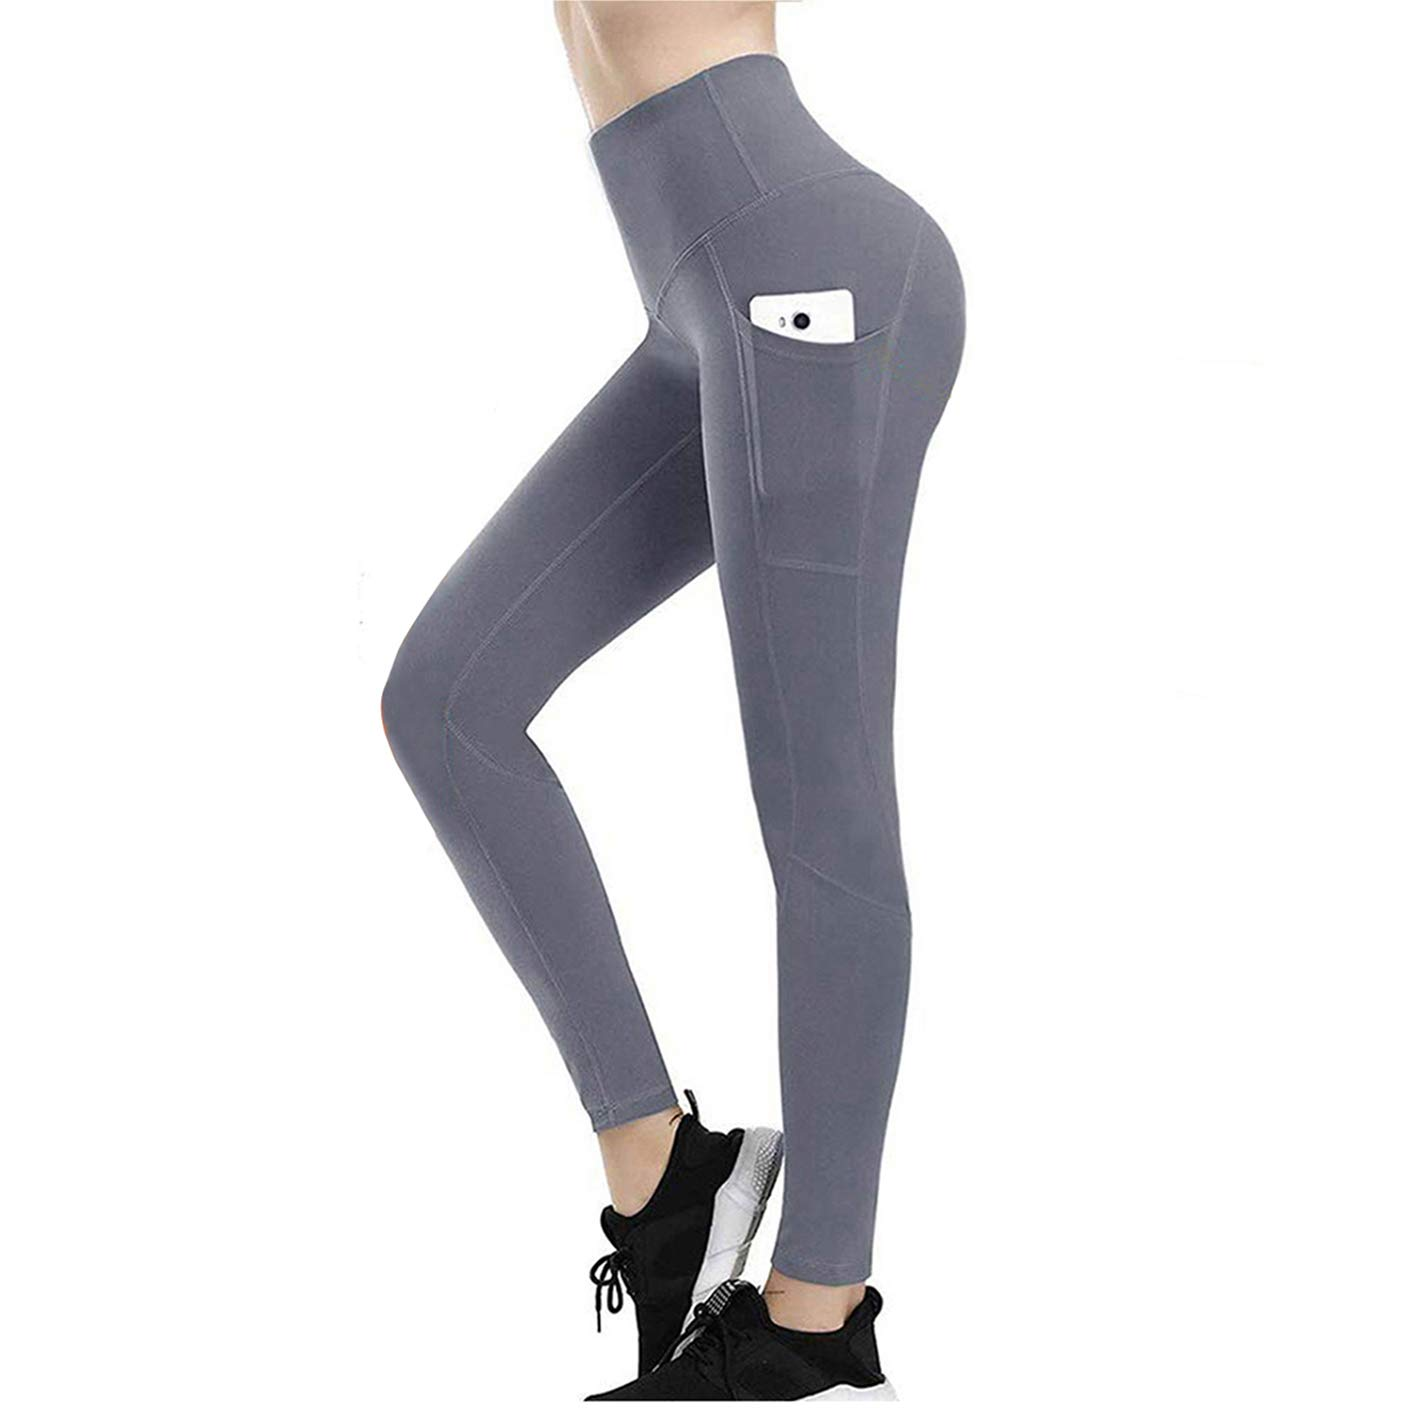 High Waisted Leggings for Women, Weight Loss Hot Sauna Sweat Yoga Pants, Compression Pants